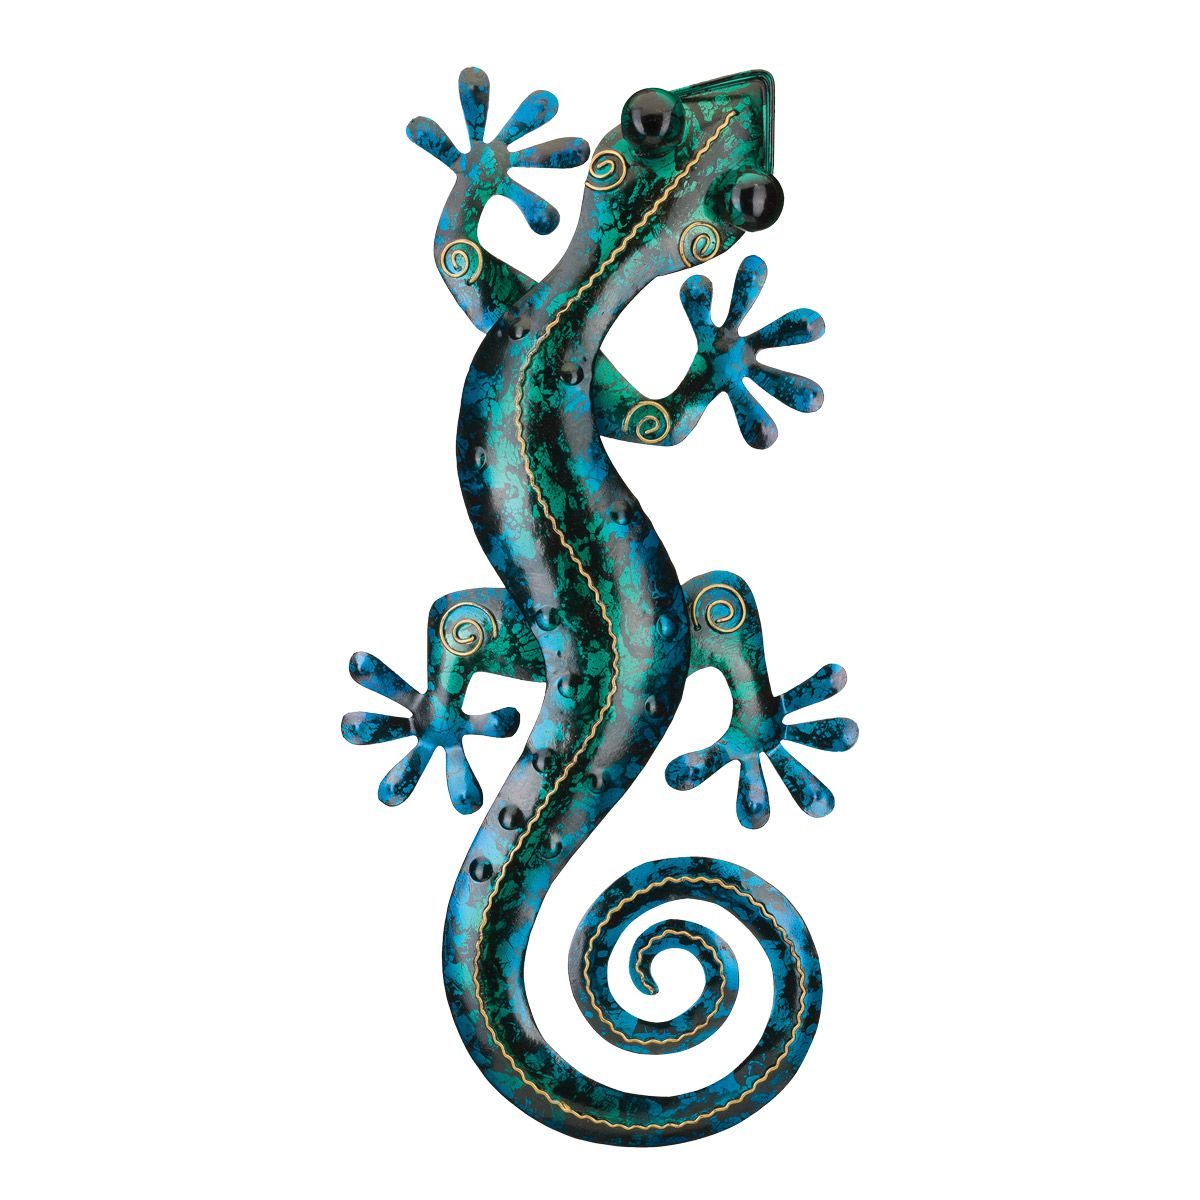 Turquoise Gecko Metal Wall Art – 19 Inch With Regard To Gecko Wall Decor (View 11 of 30)